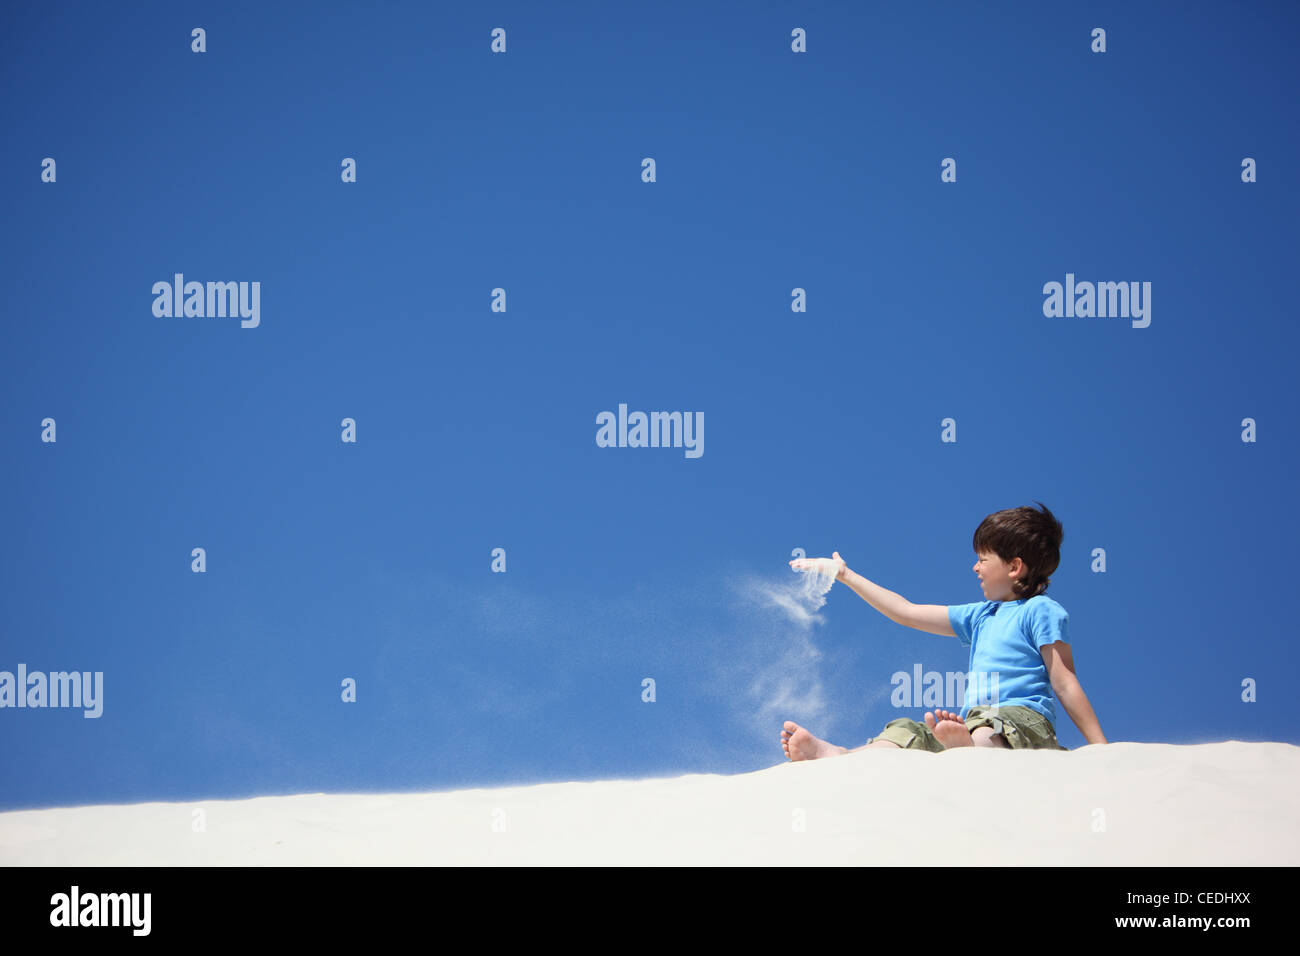 boy sits on sand and scatters it - Stock Image